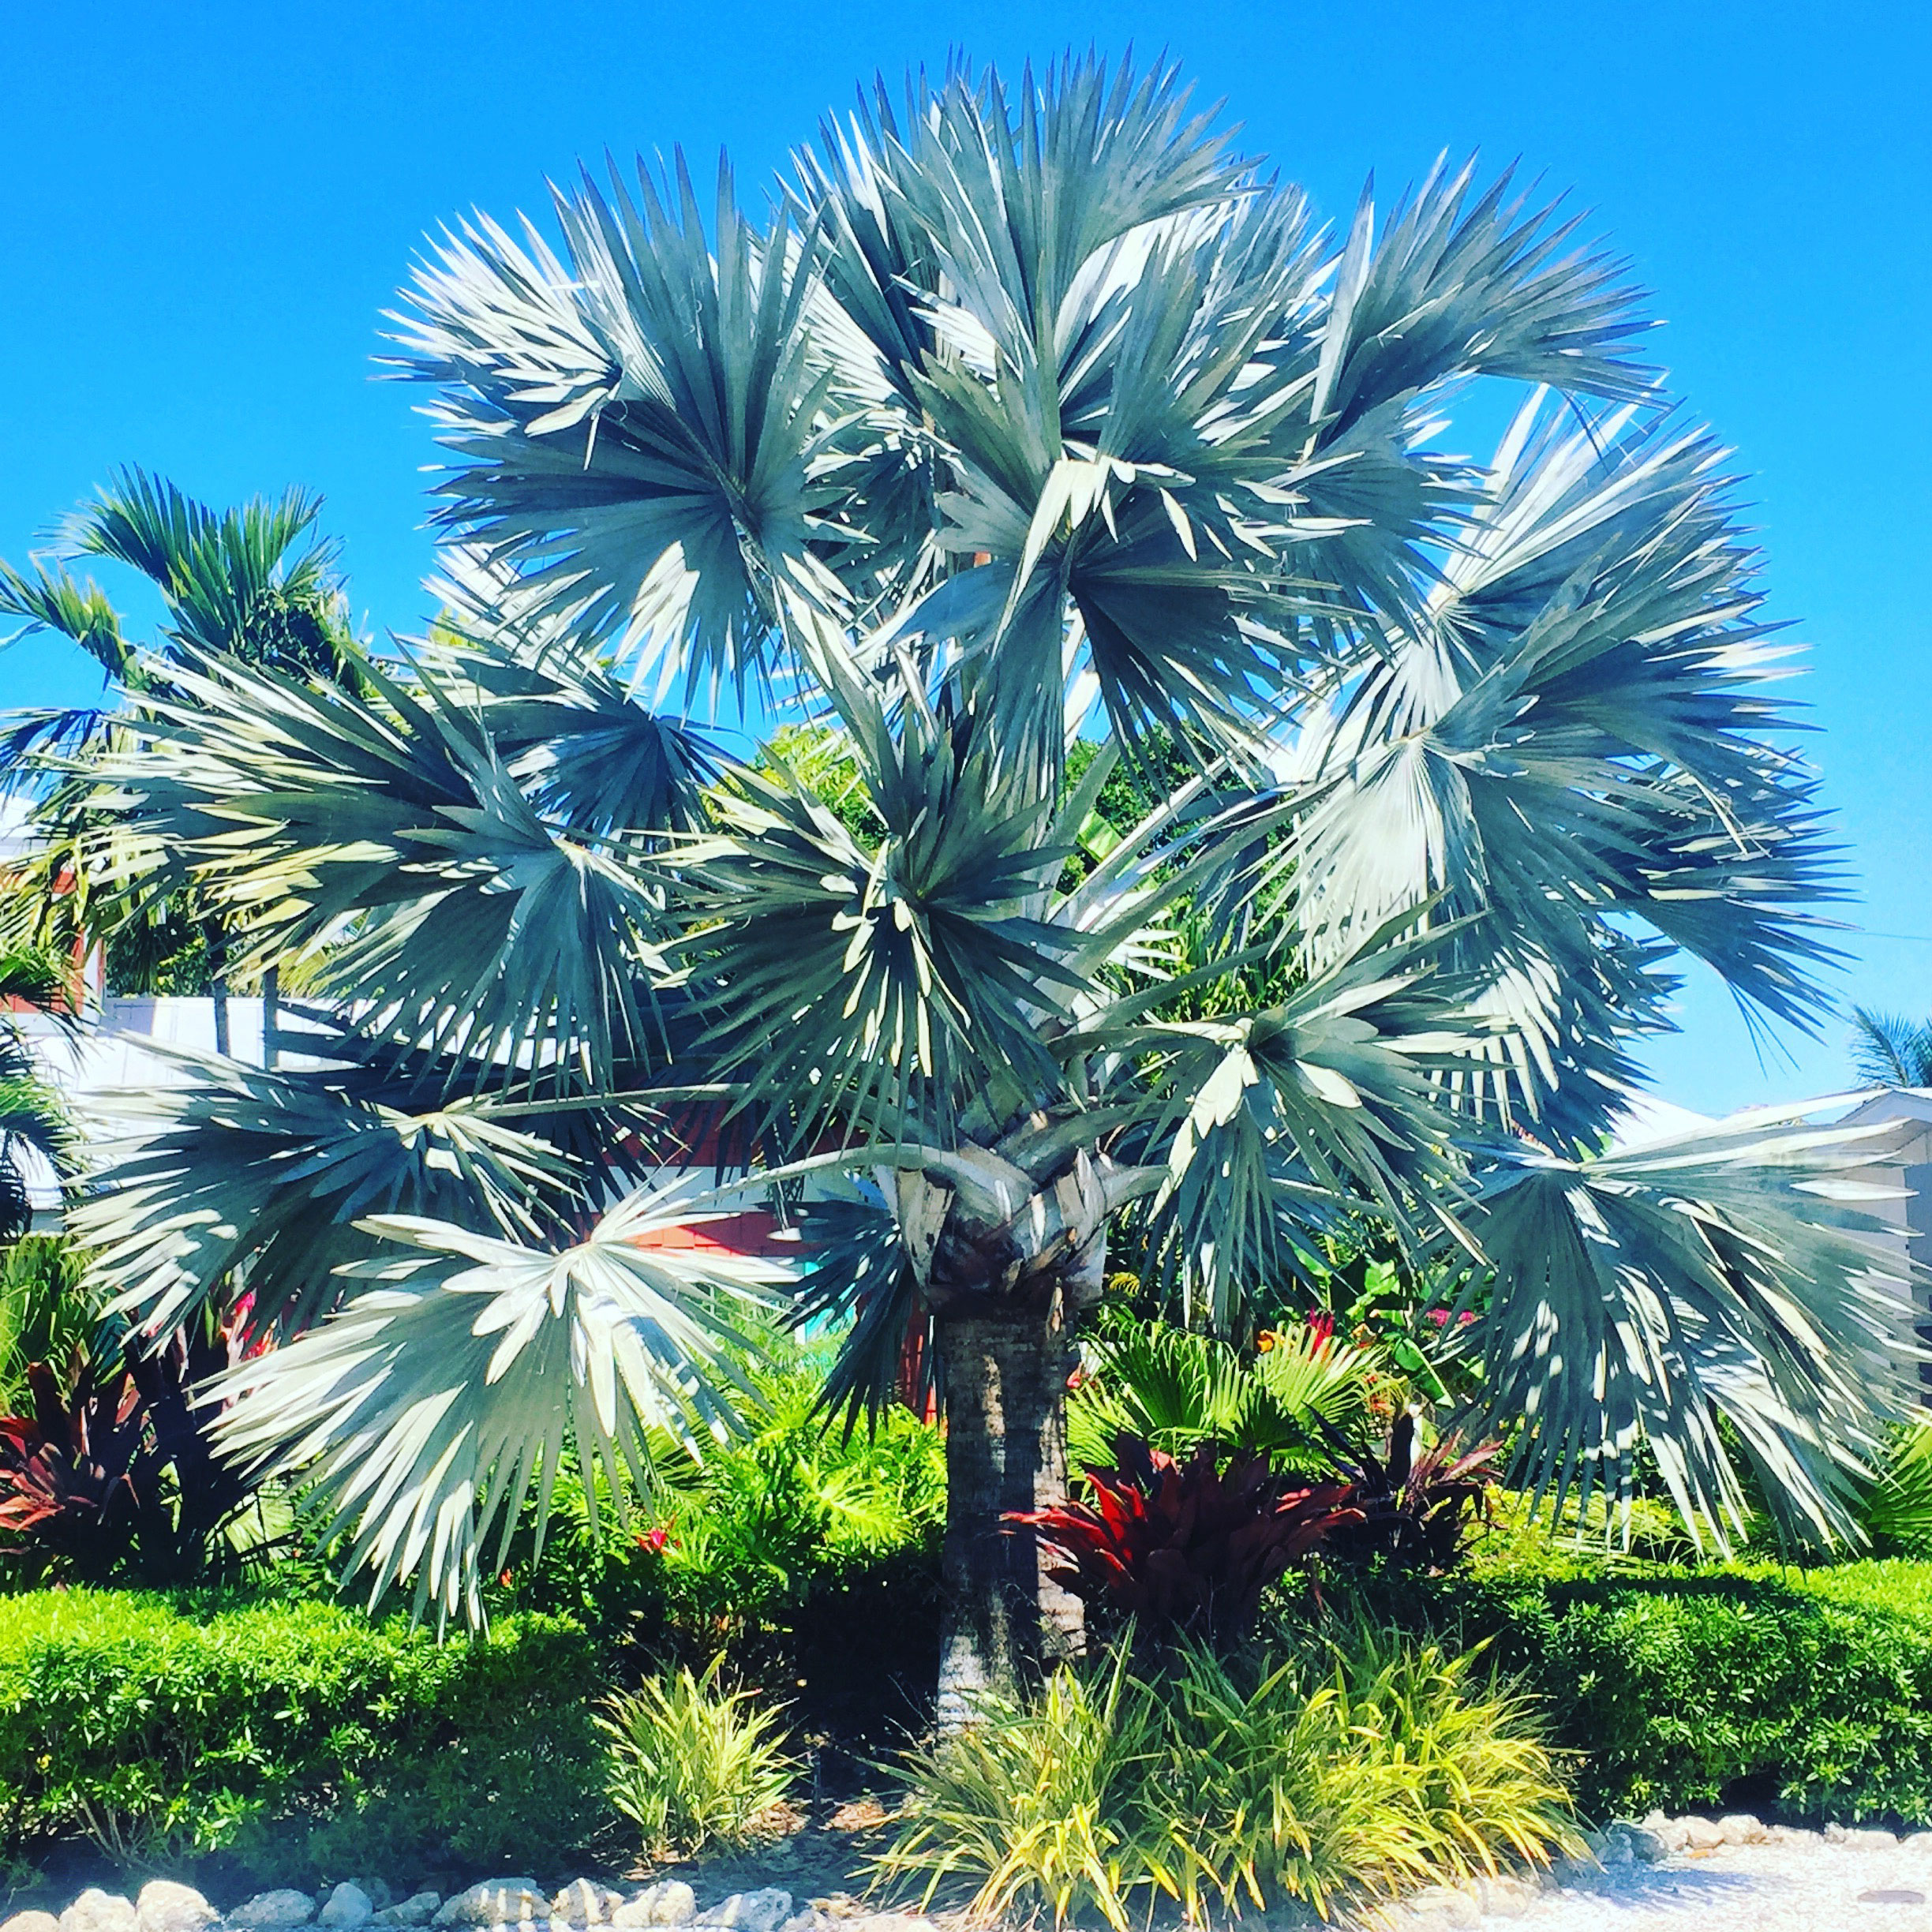 The flora and fauna was beautiful. I loved the sound of the breezes blowing through palm fronds. I thought these bluey-silver palms were so pretty! The tropical version of our blue spruce pine trees!